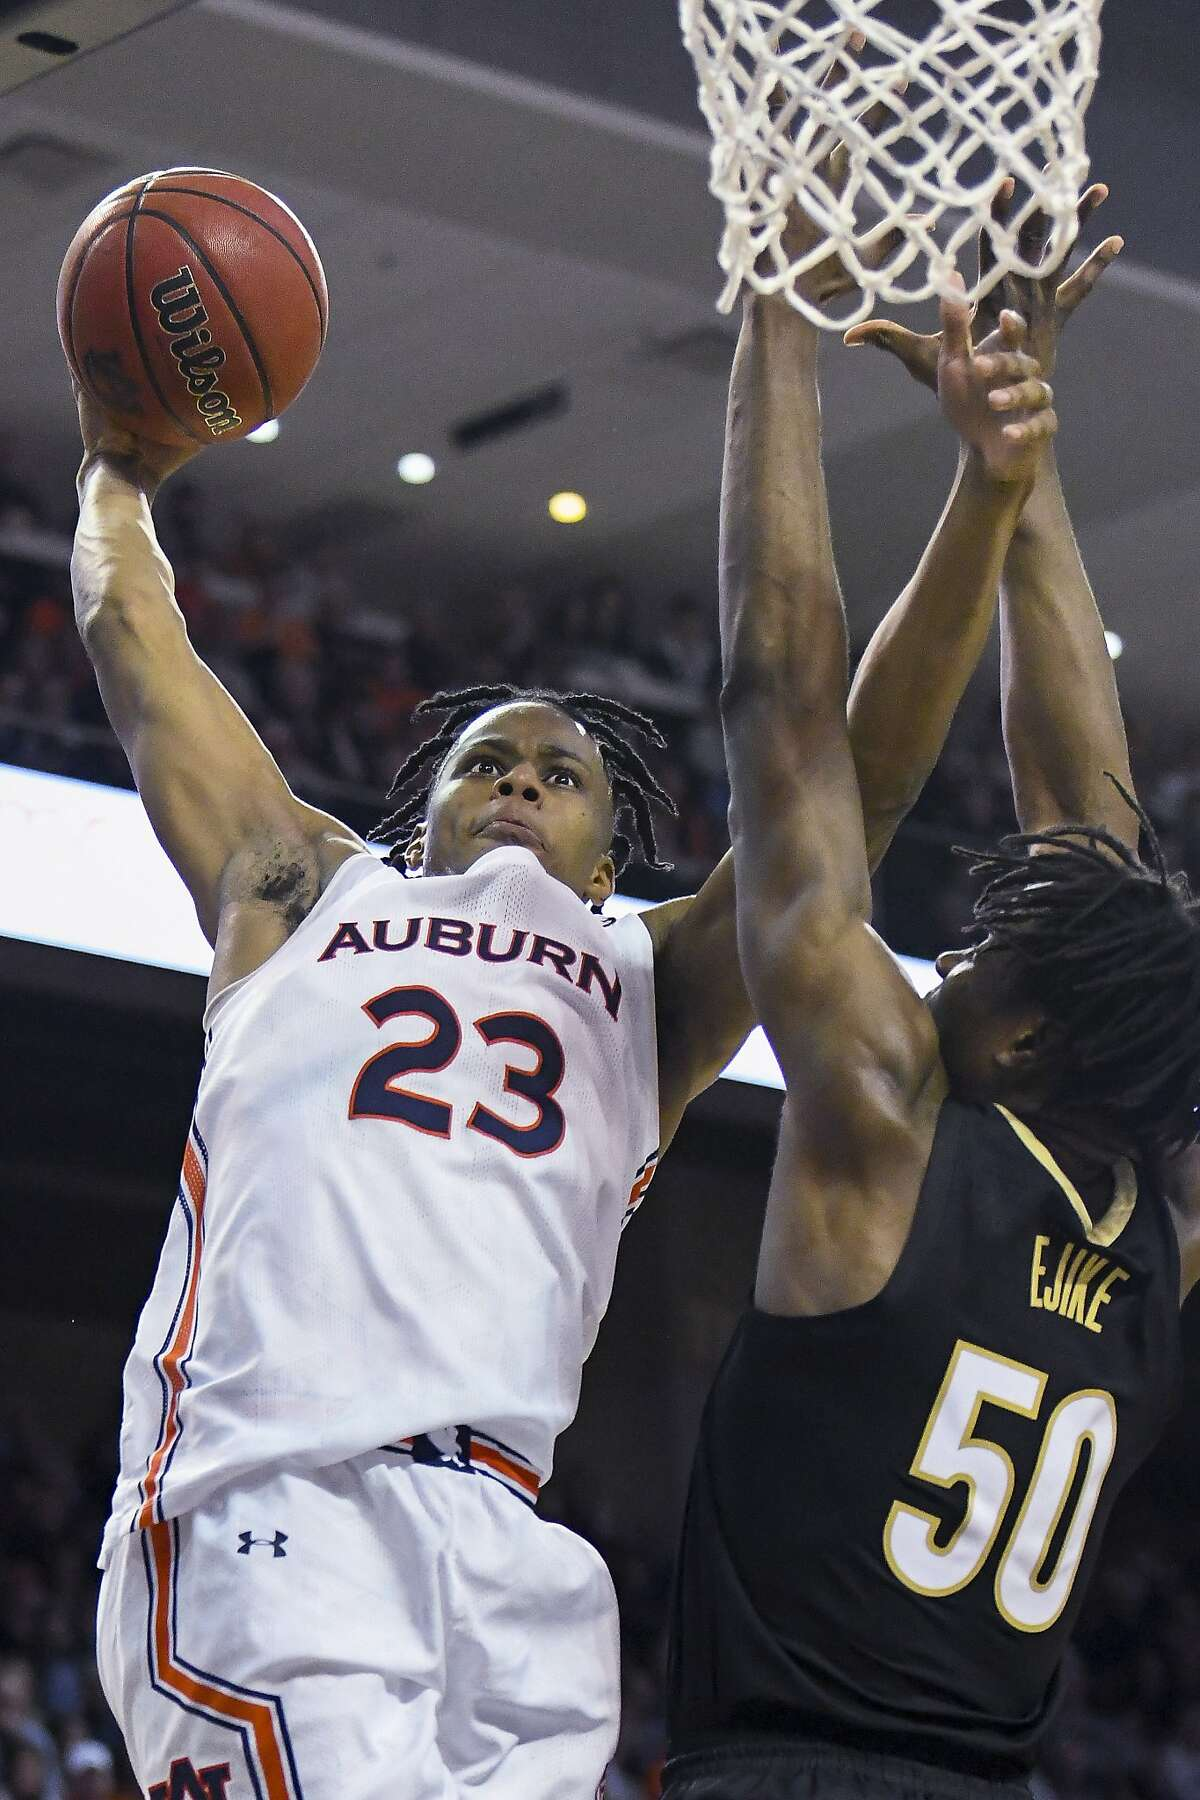 Auburn forward Isaac Okoro (23) dunks and is fouled against Vanderbilt. Okoro might aspire to play the role Andre Iguodala once played on the Golden State Warriors.